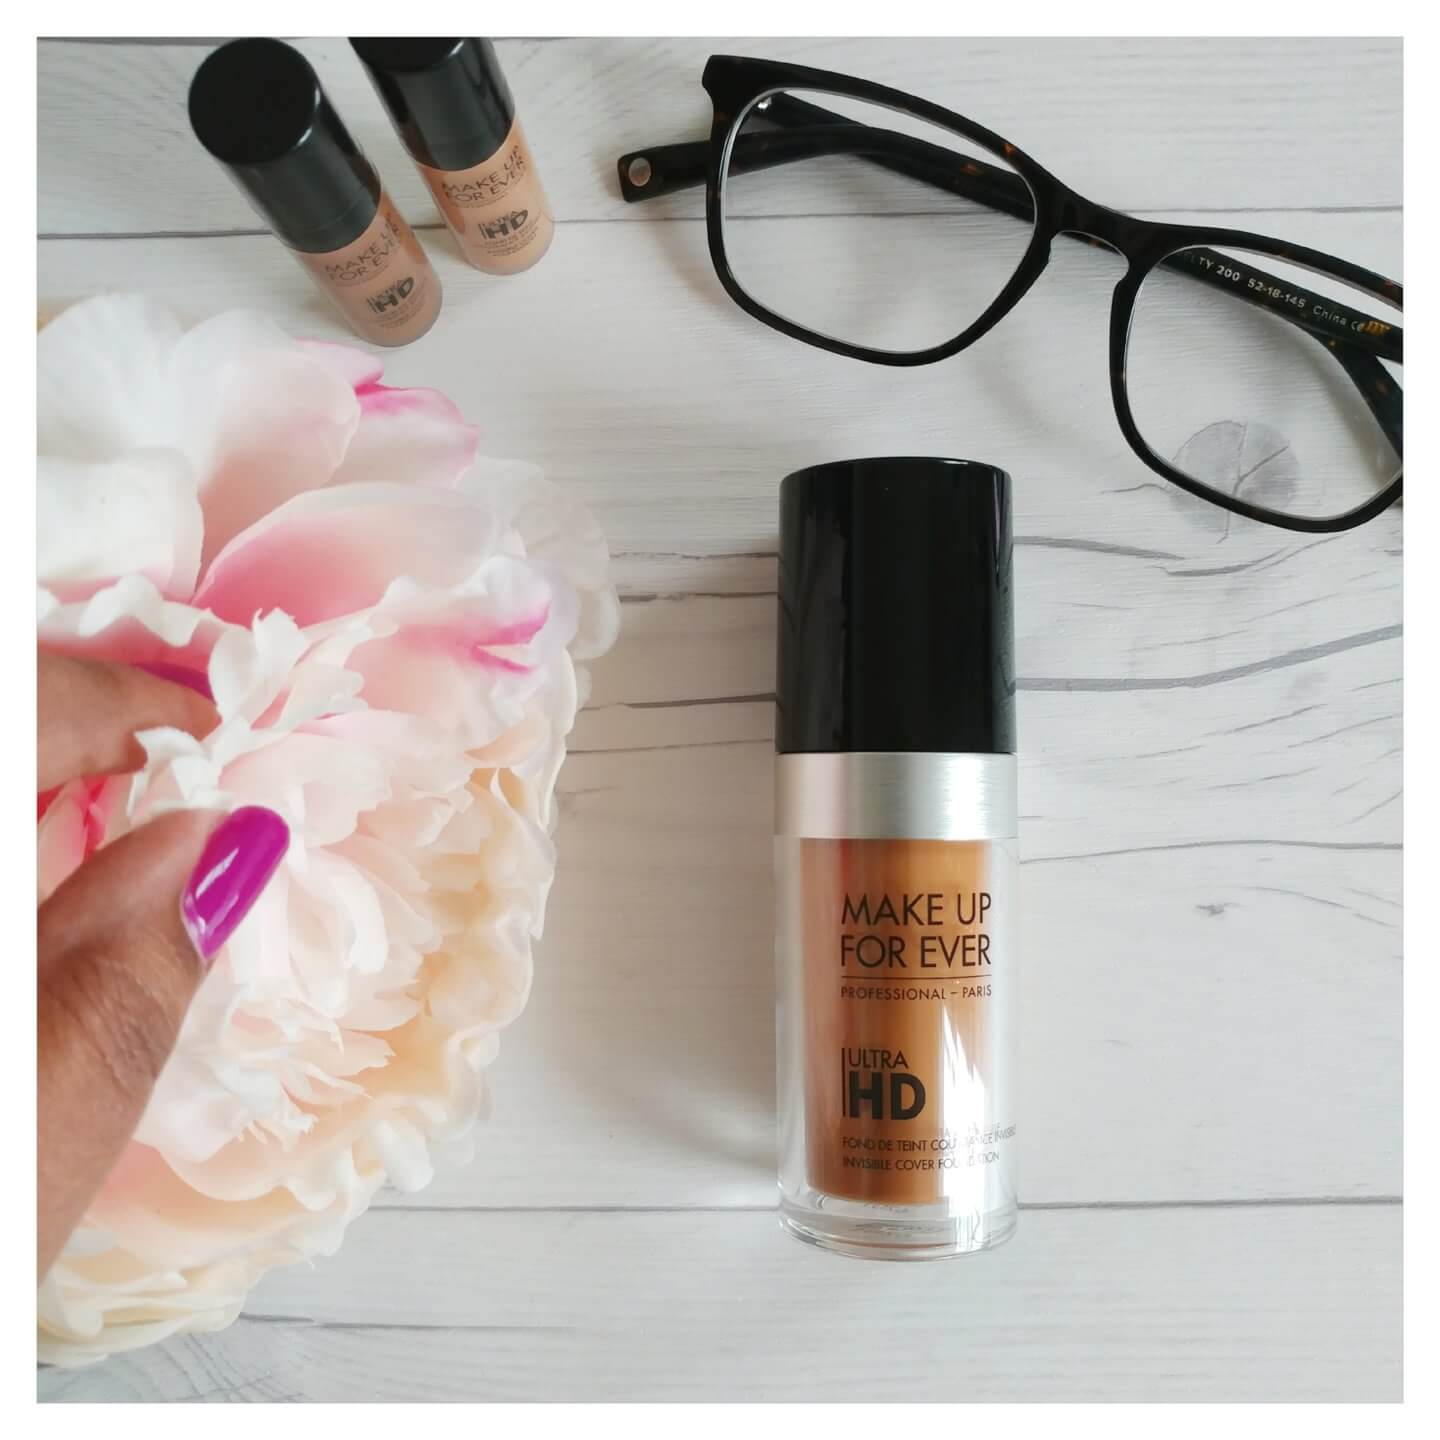 It's A Winner! Make Up For Ever UltraHD Invisible Cover Foundation